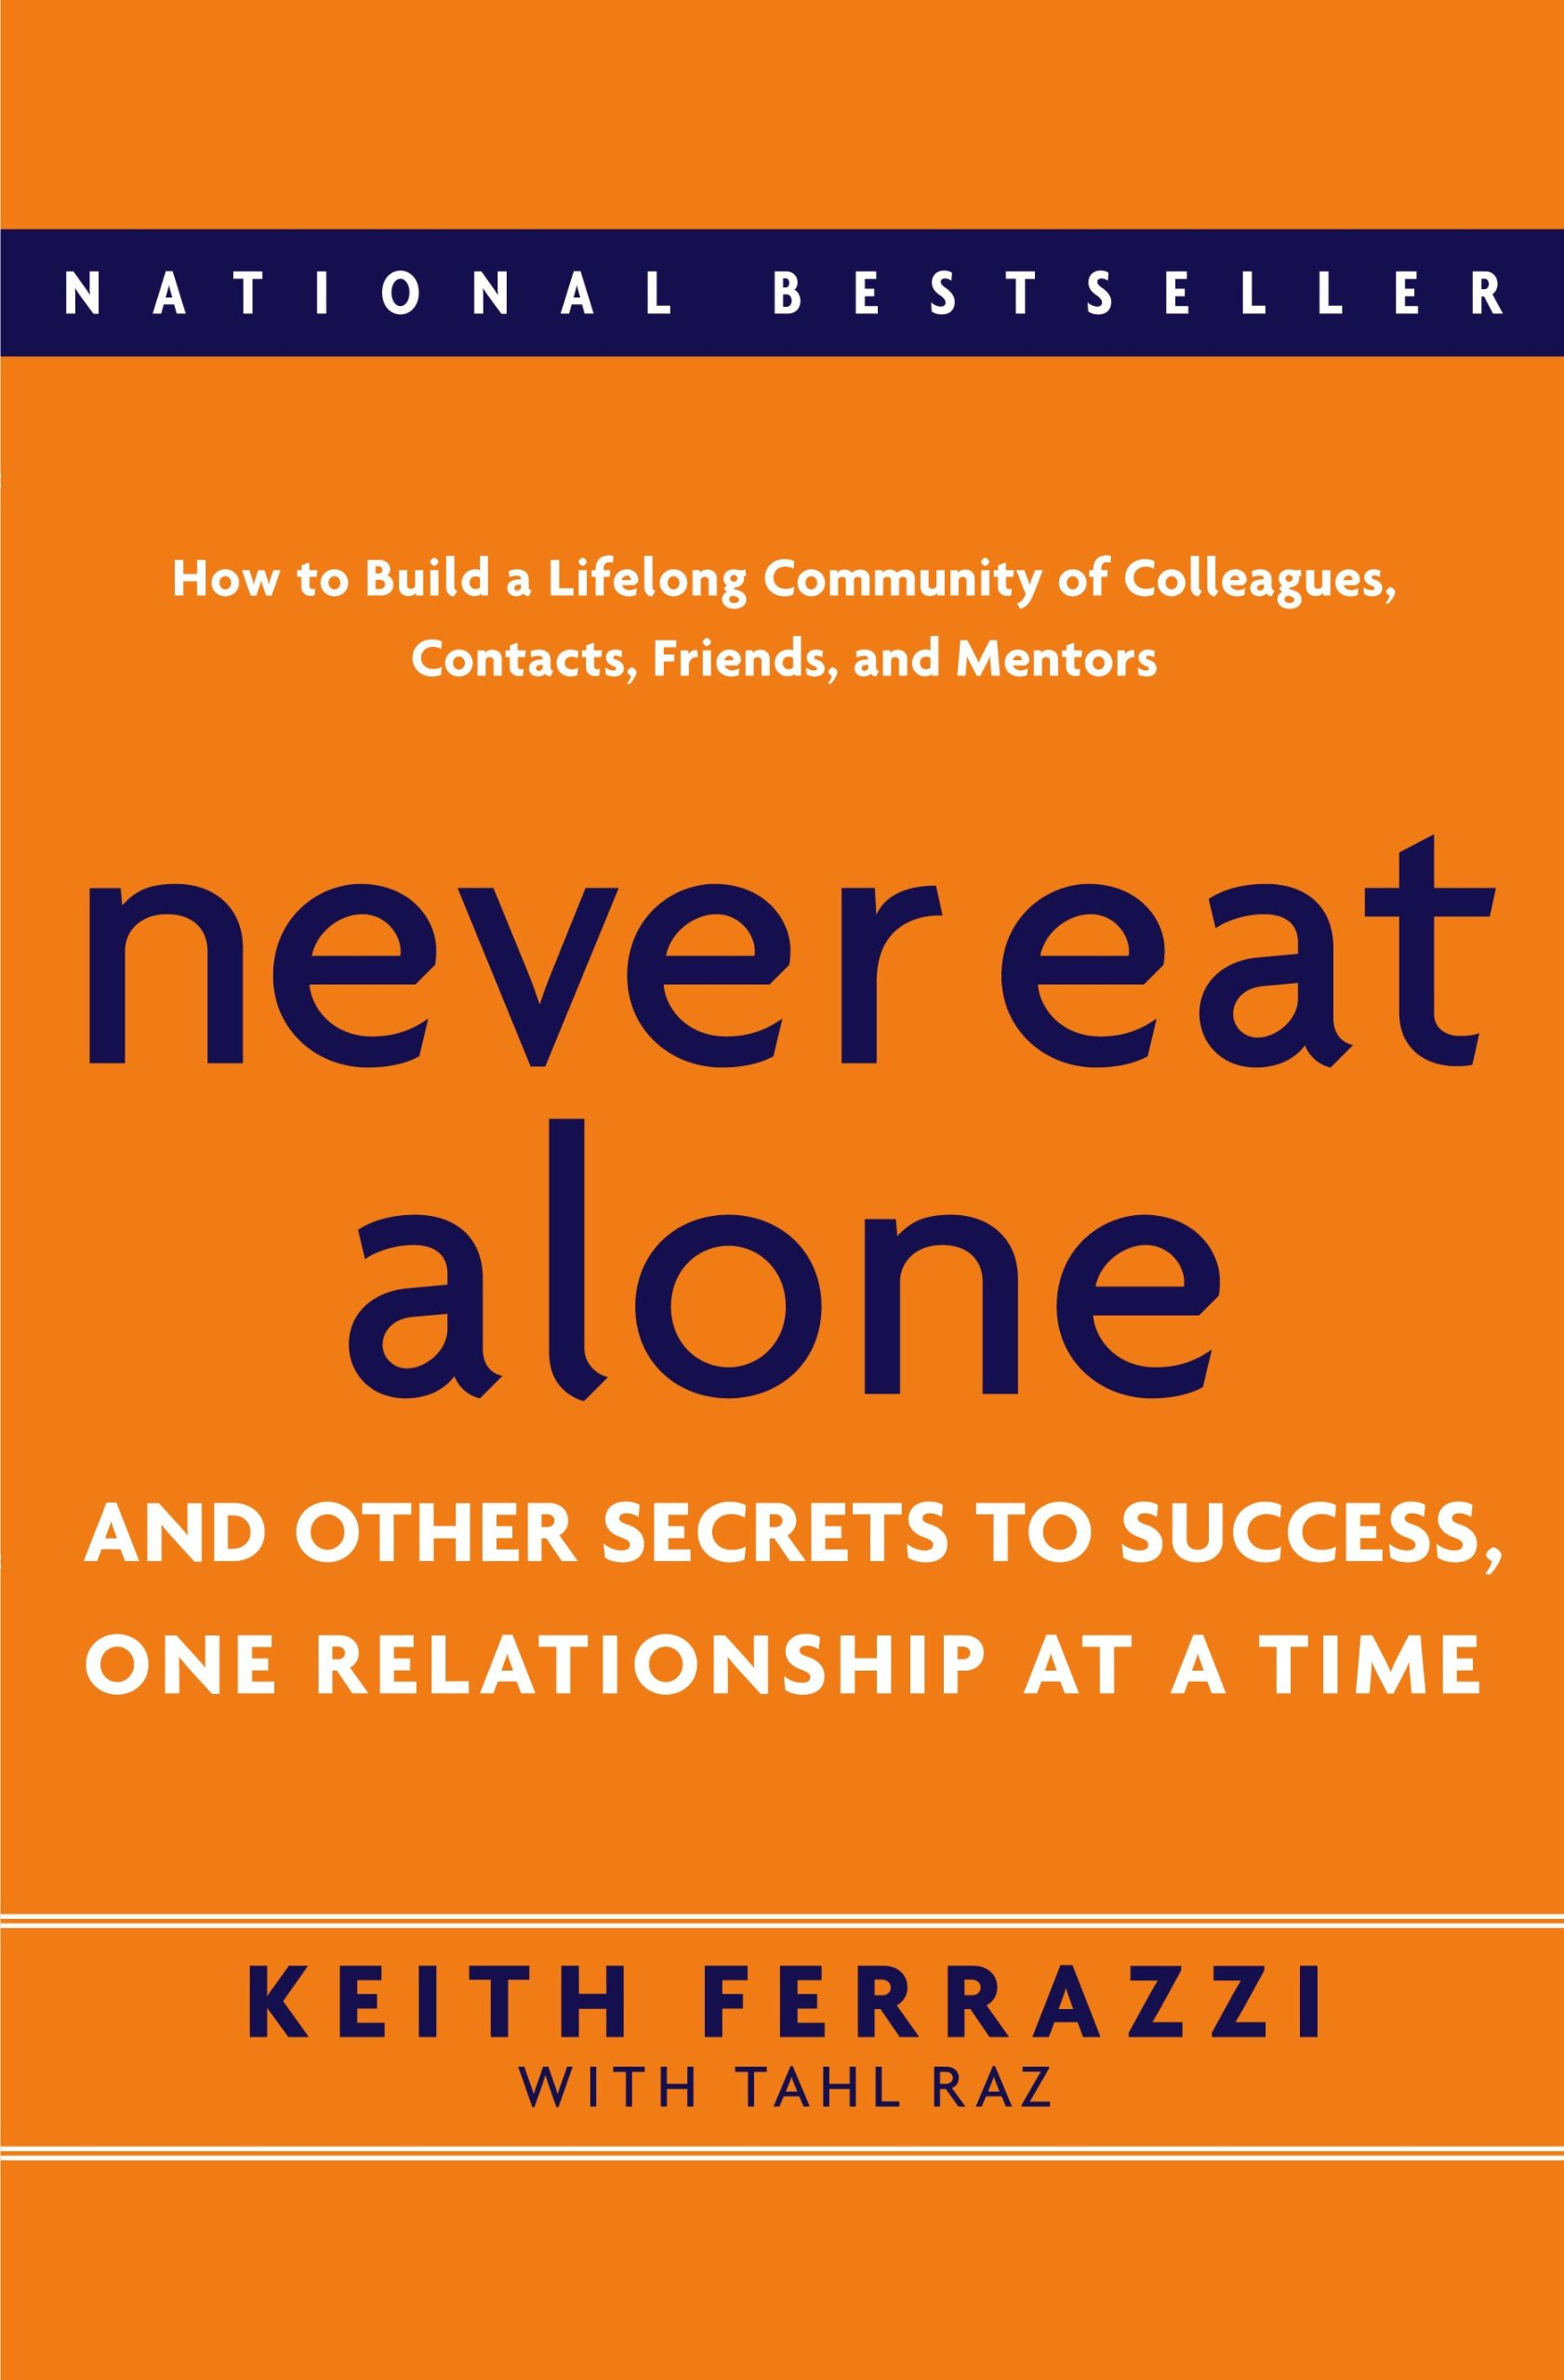 never-eat-alone-book-cover